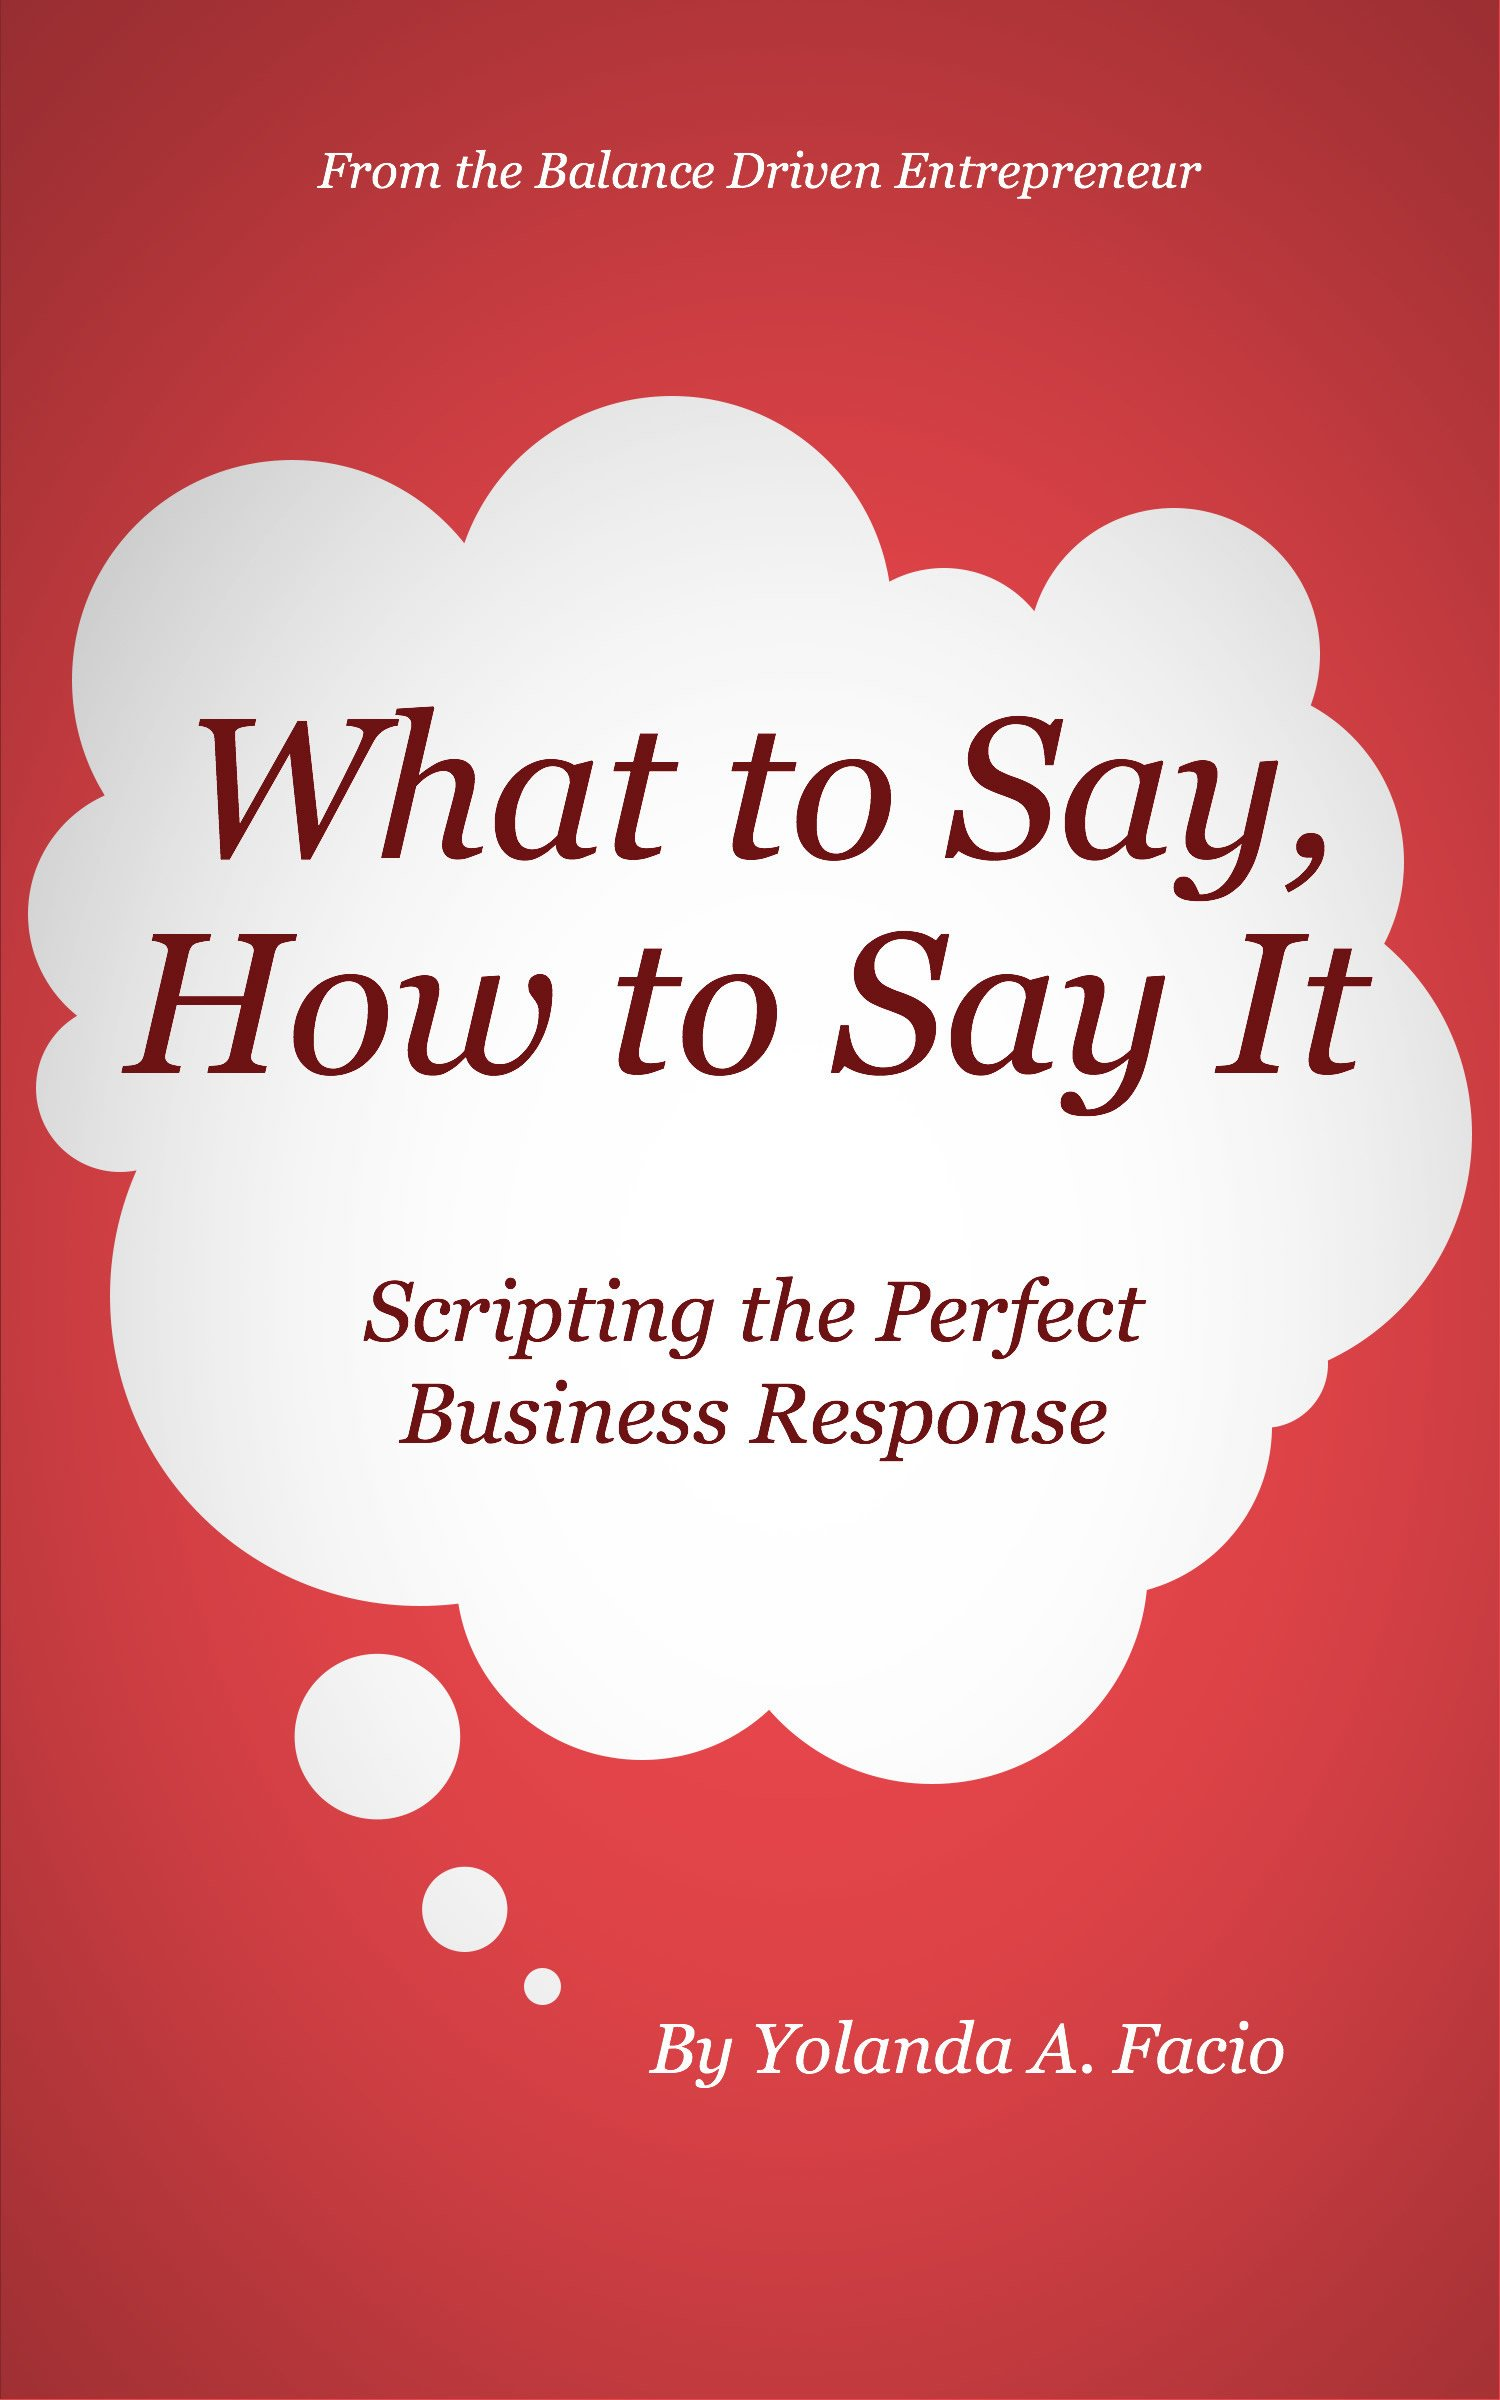 What to Say, How to Say It: Scripting the Perfect Business Response